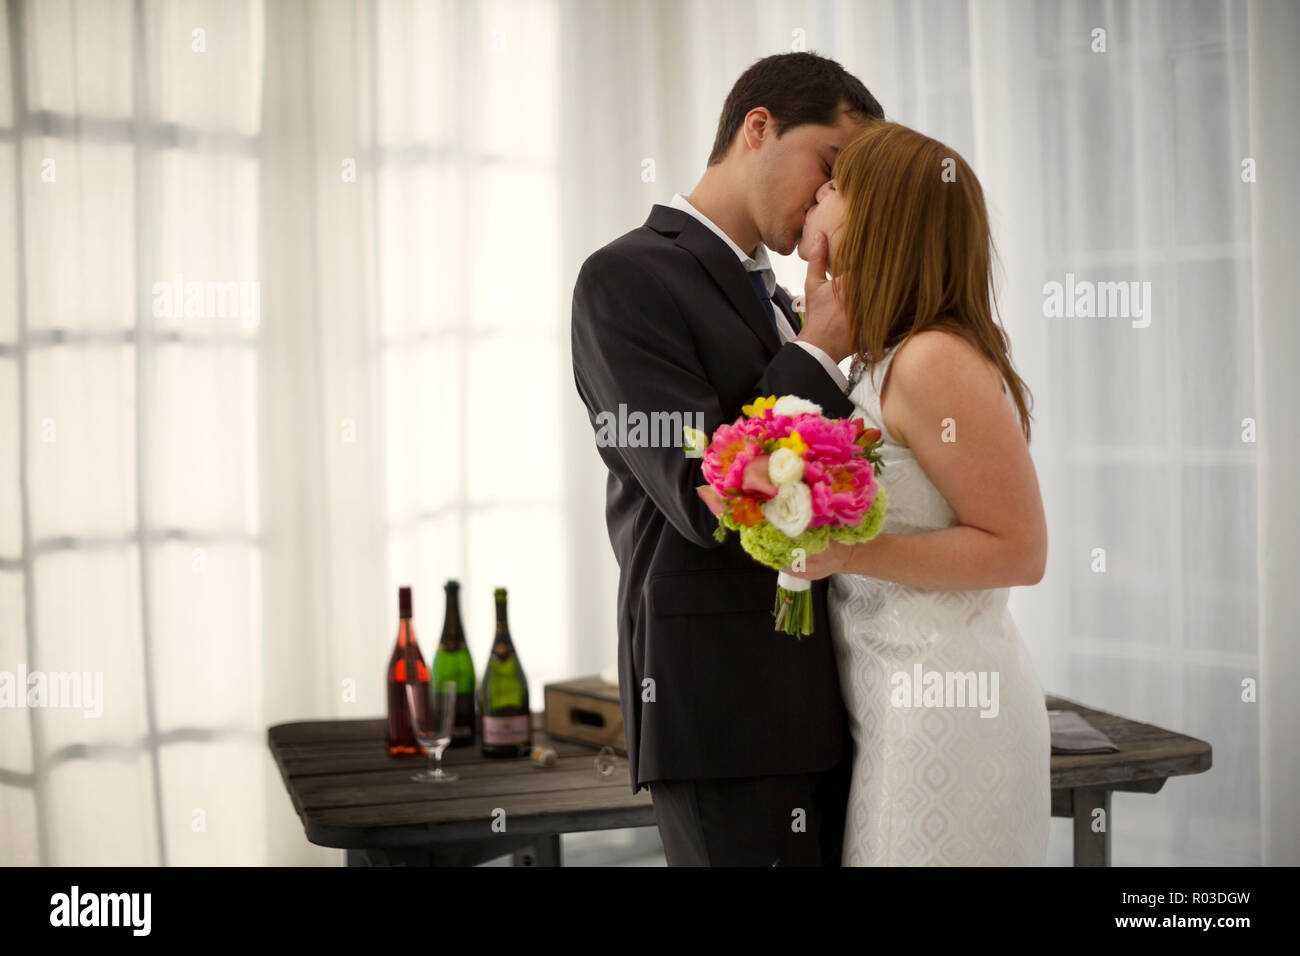 Bride and groom kissing at wedding reception. - Stock Image